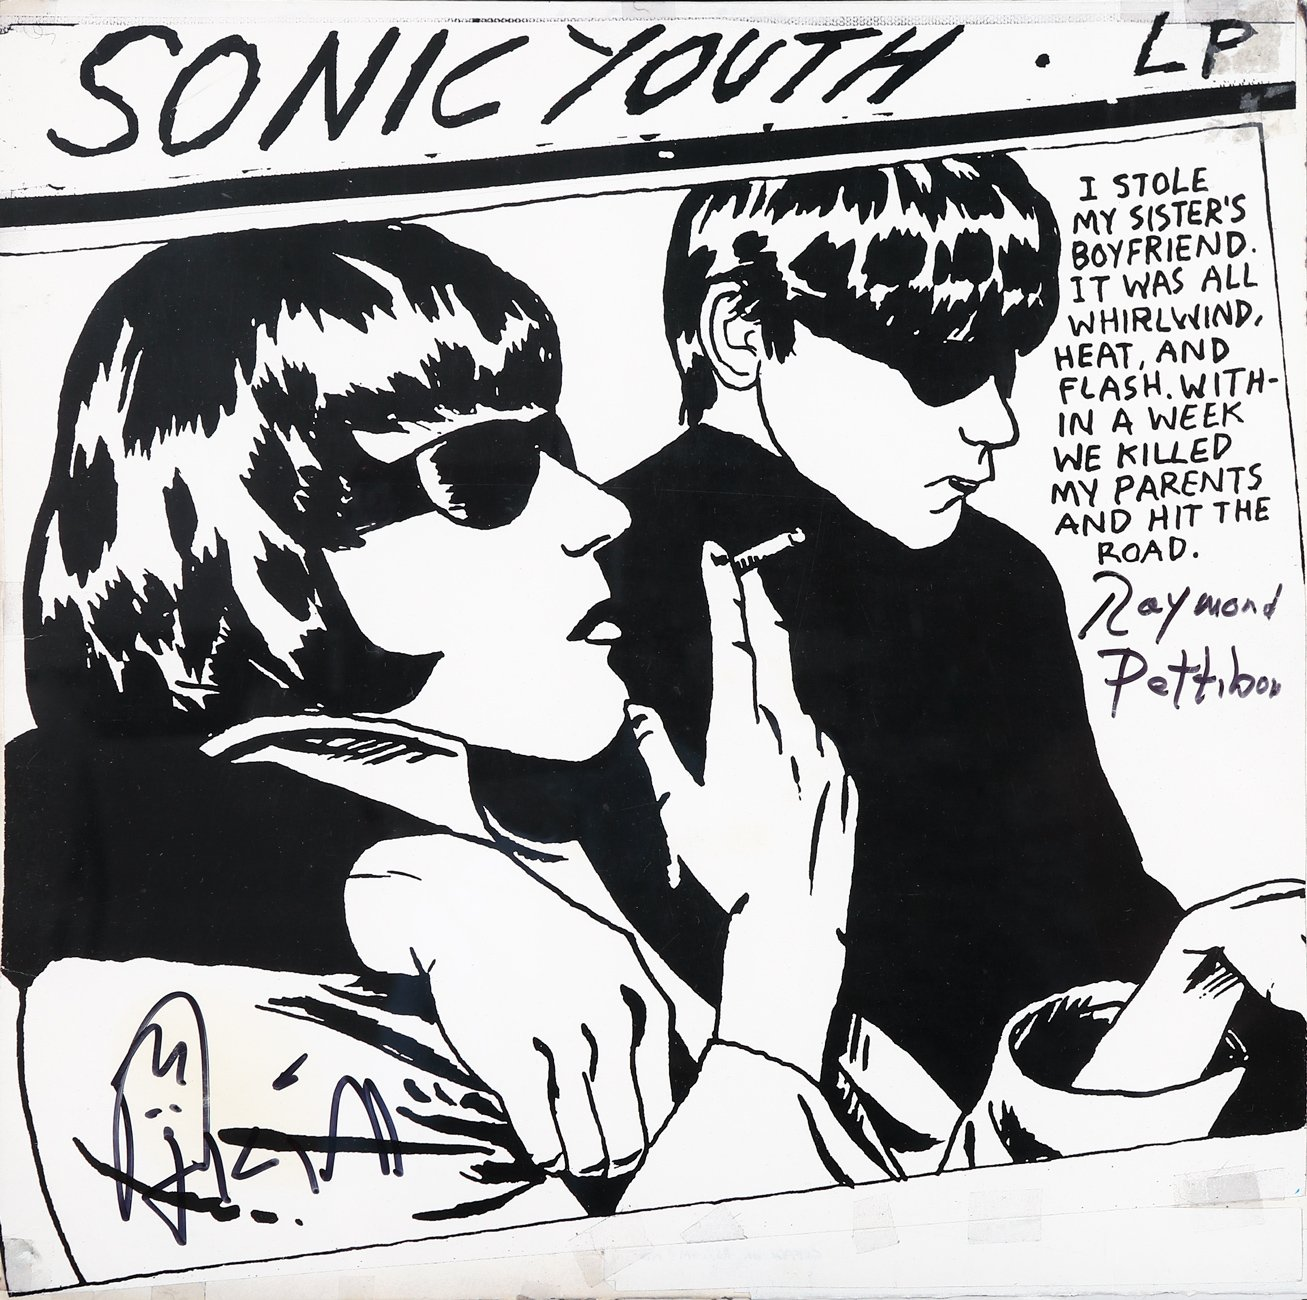 Sonic Youth (Hand signed by both Kim Gordon and Raymond Pettibon)